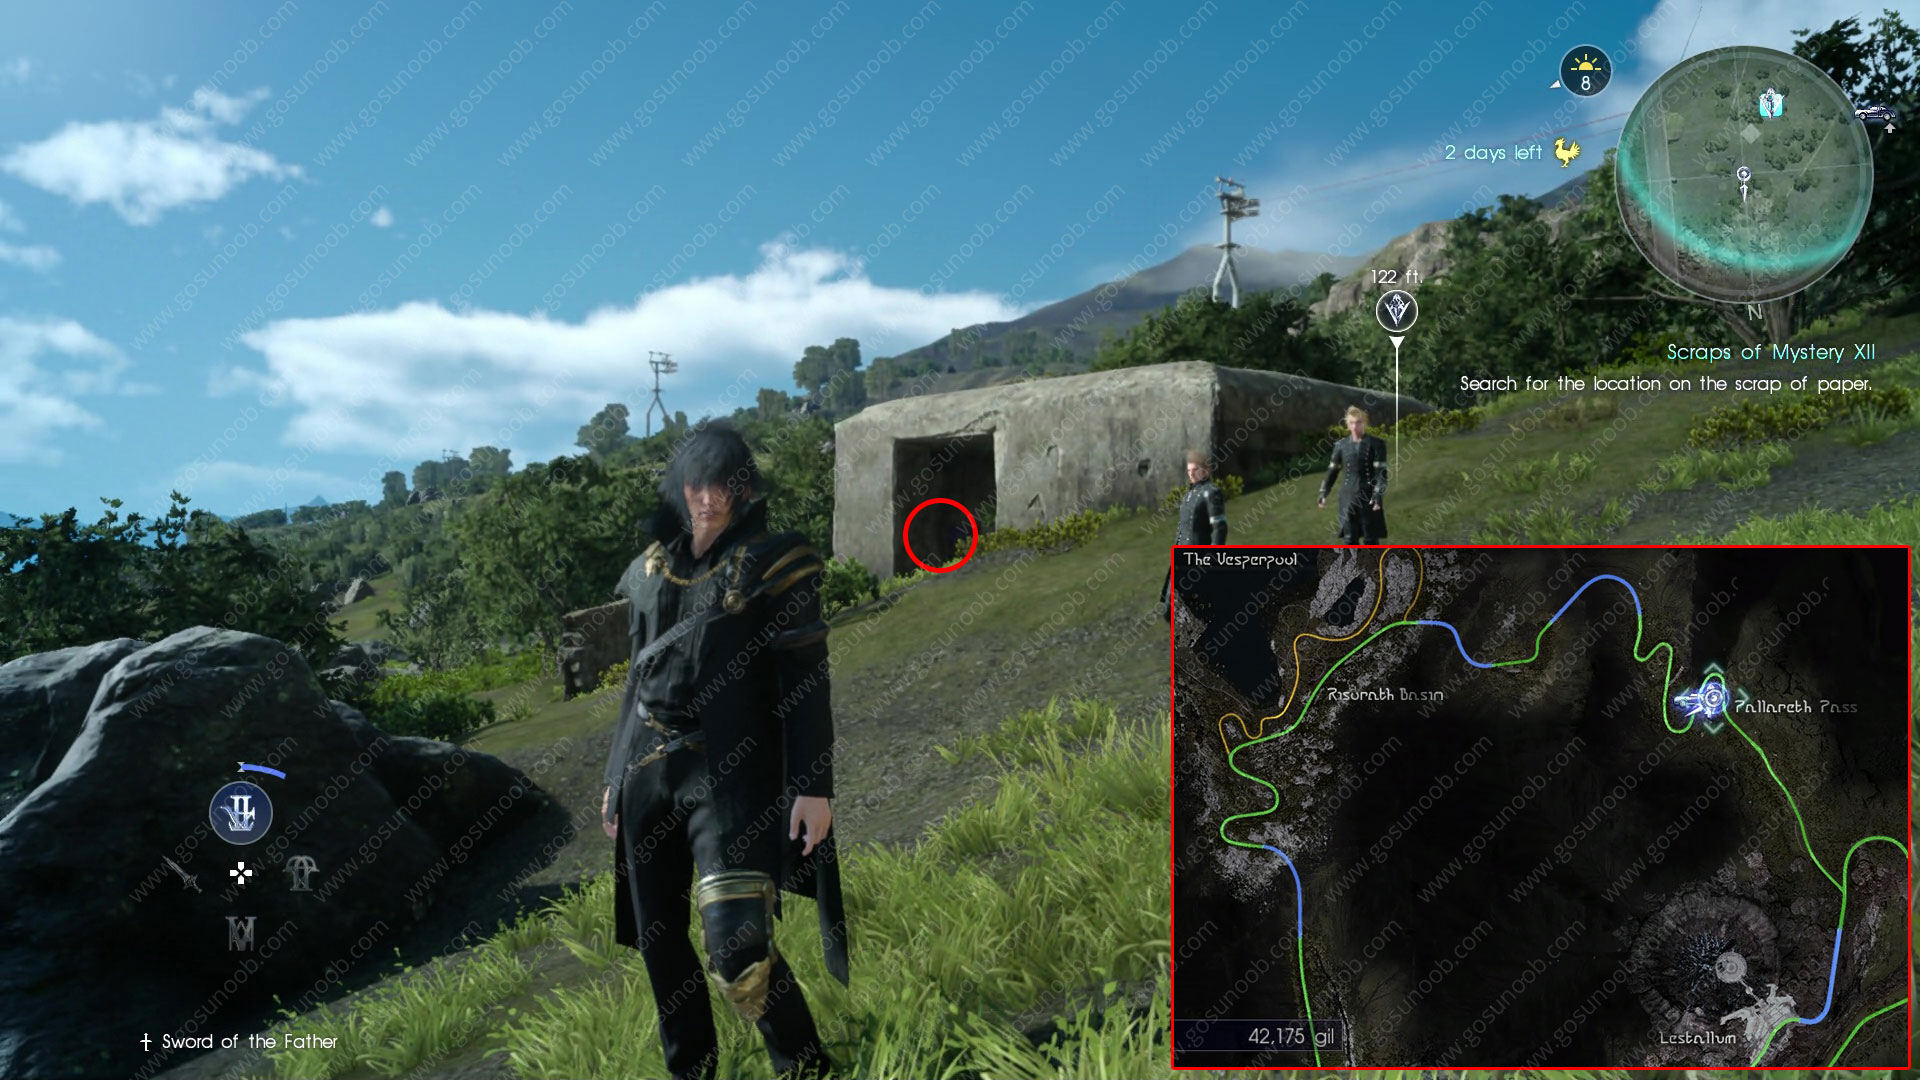 scraps-of-mystery-xii-scrap-location-final-fantasy-xv